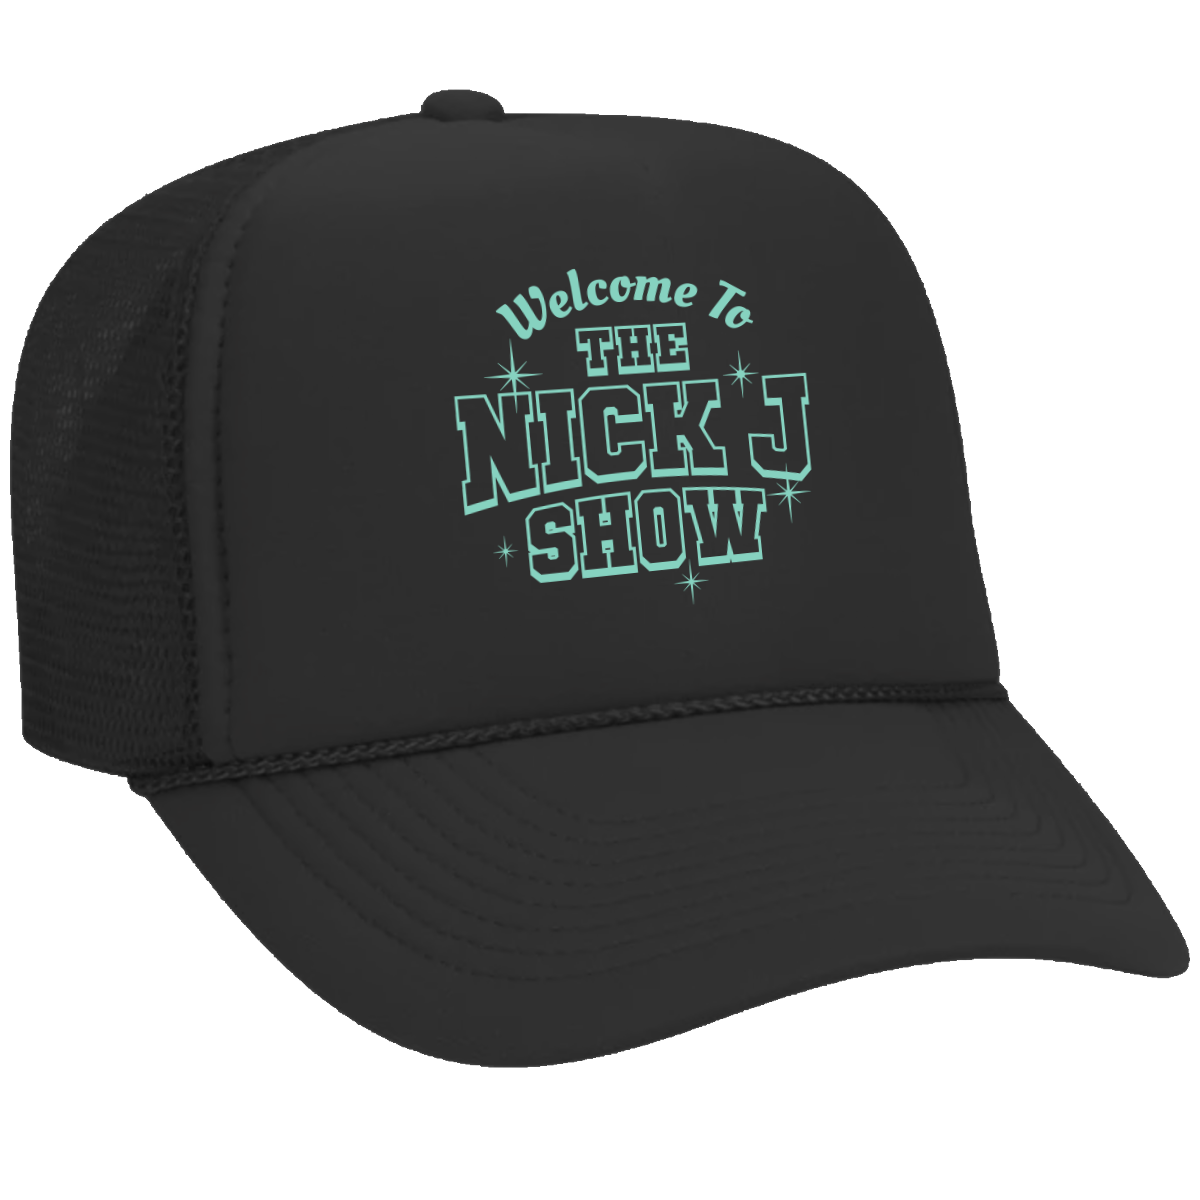 NICK J SHOW TRUCKER HAT